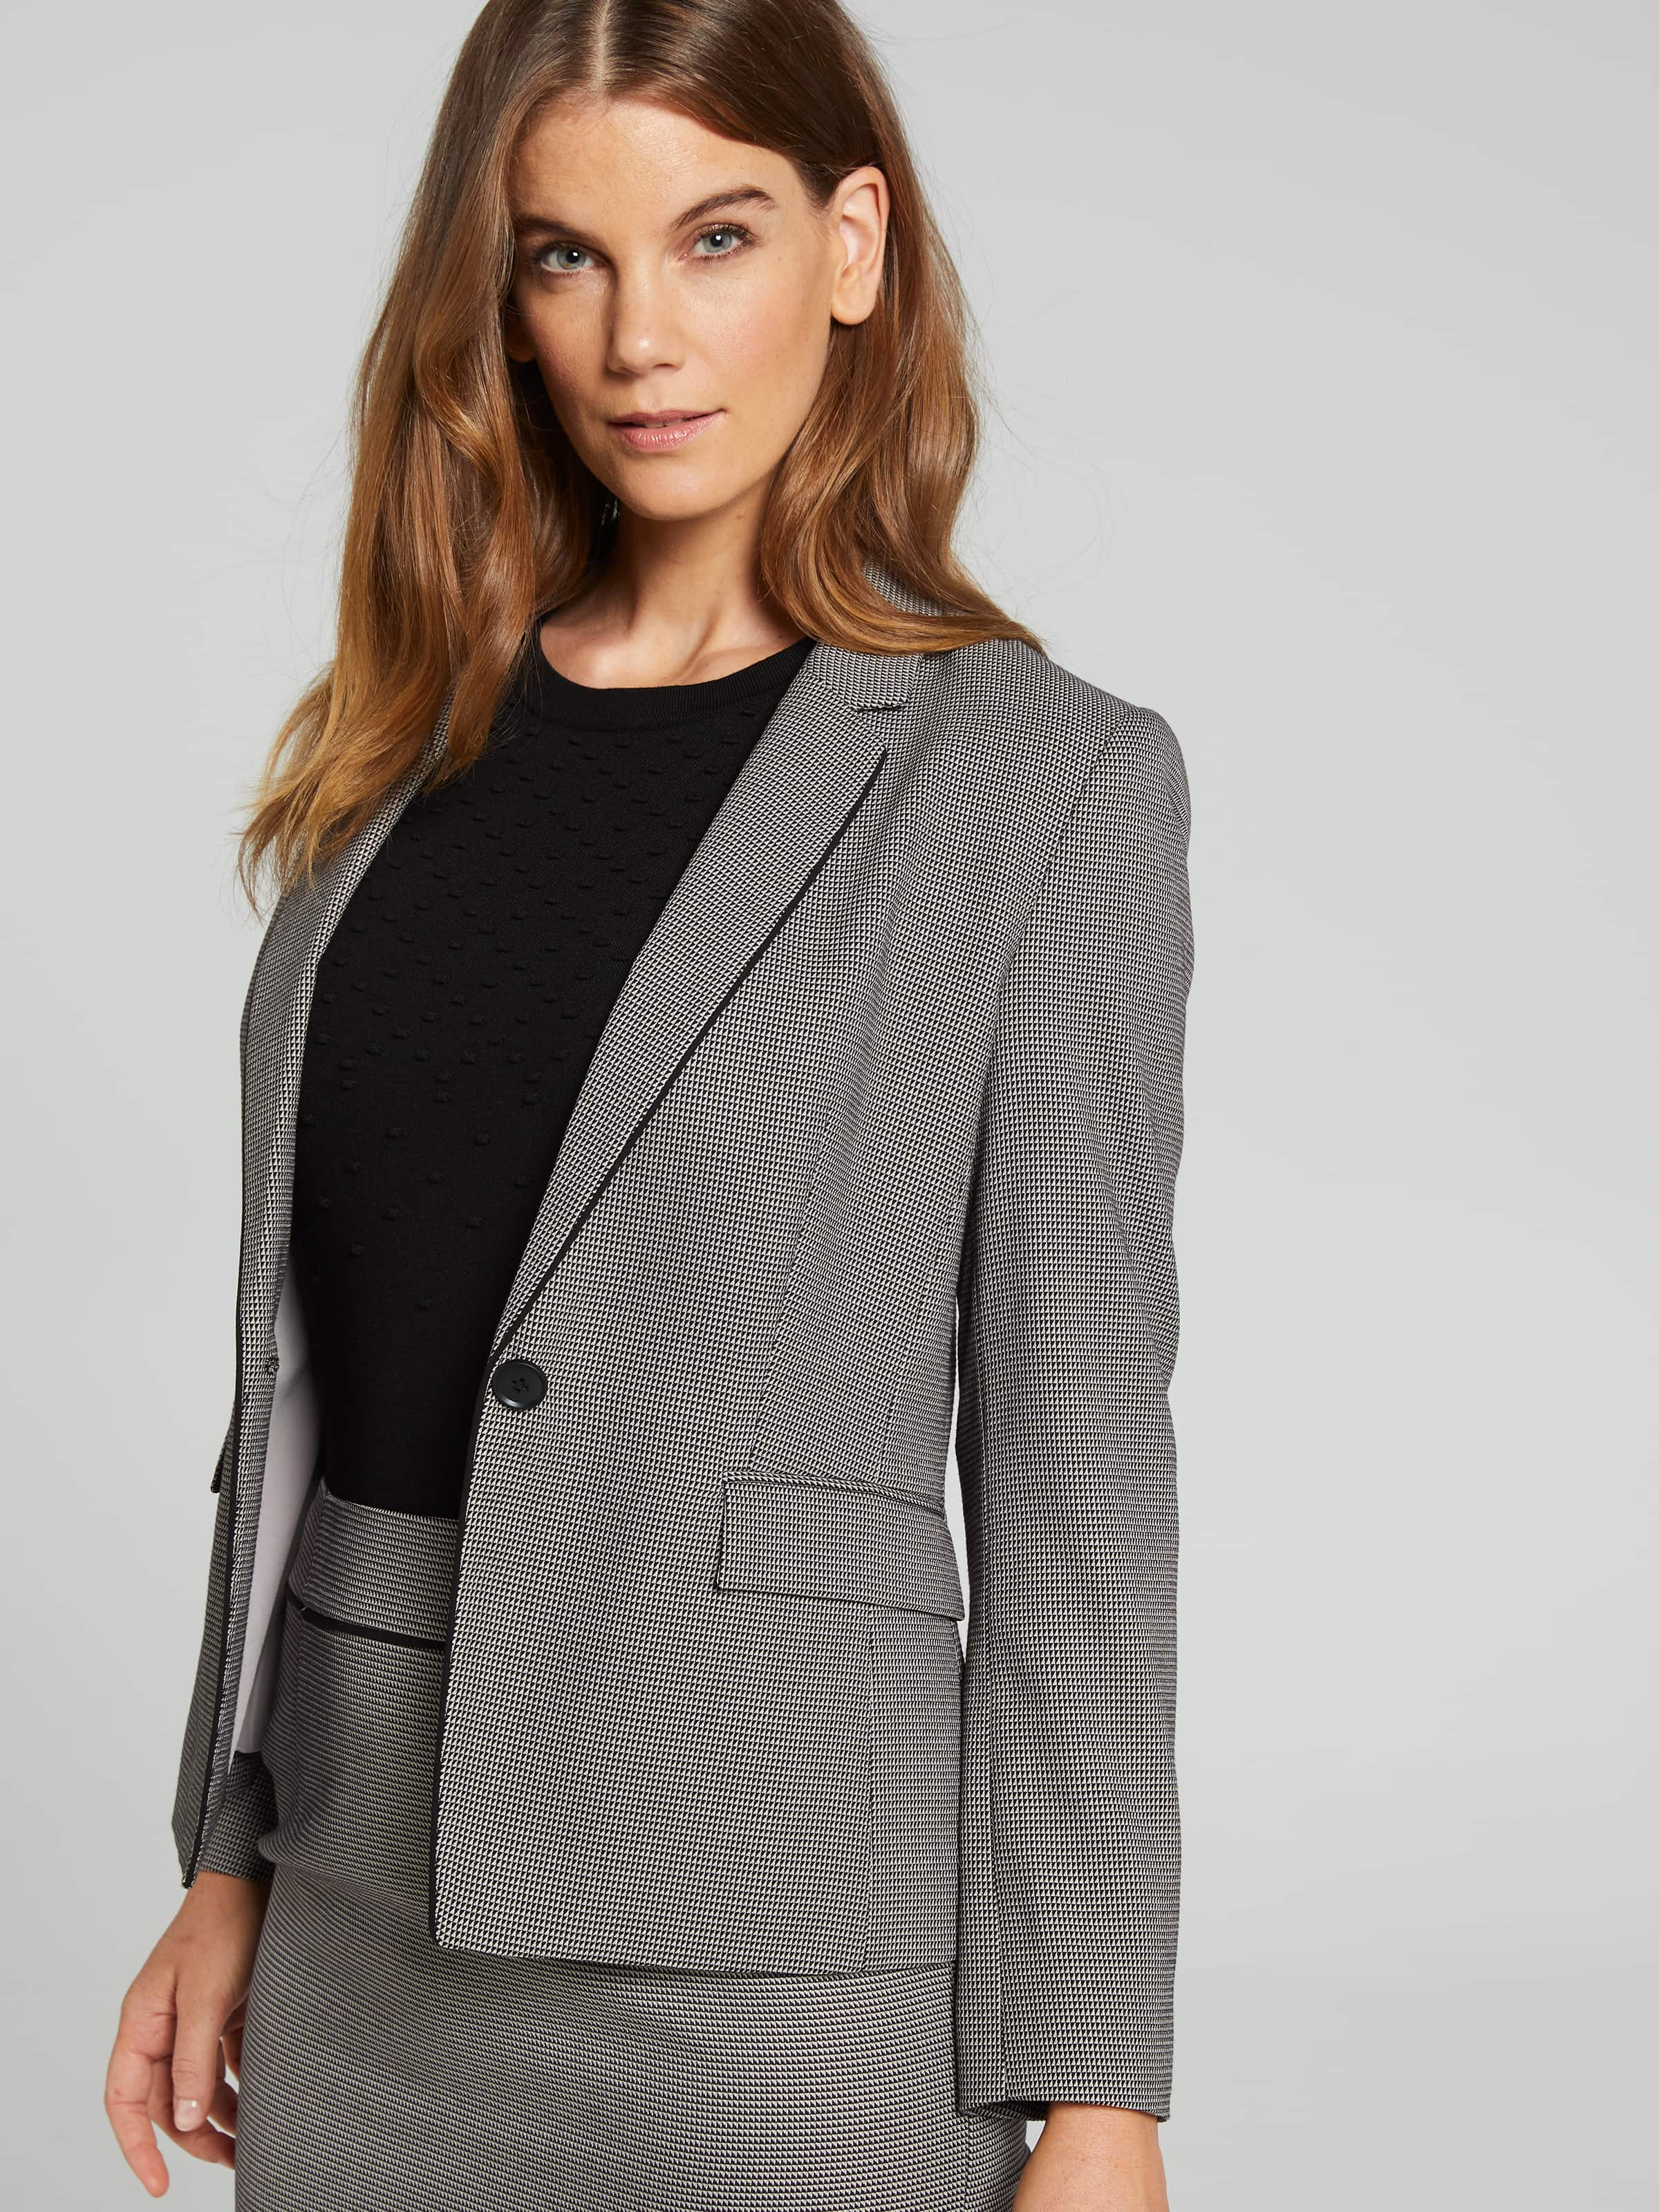 Image of Jacqui E Australia Jacqui E Geo Piped Suit Jacket